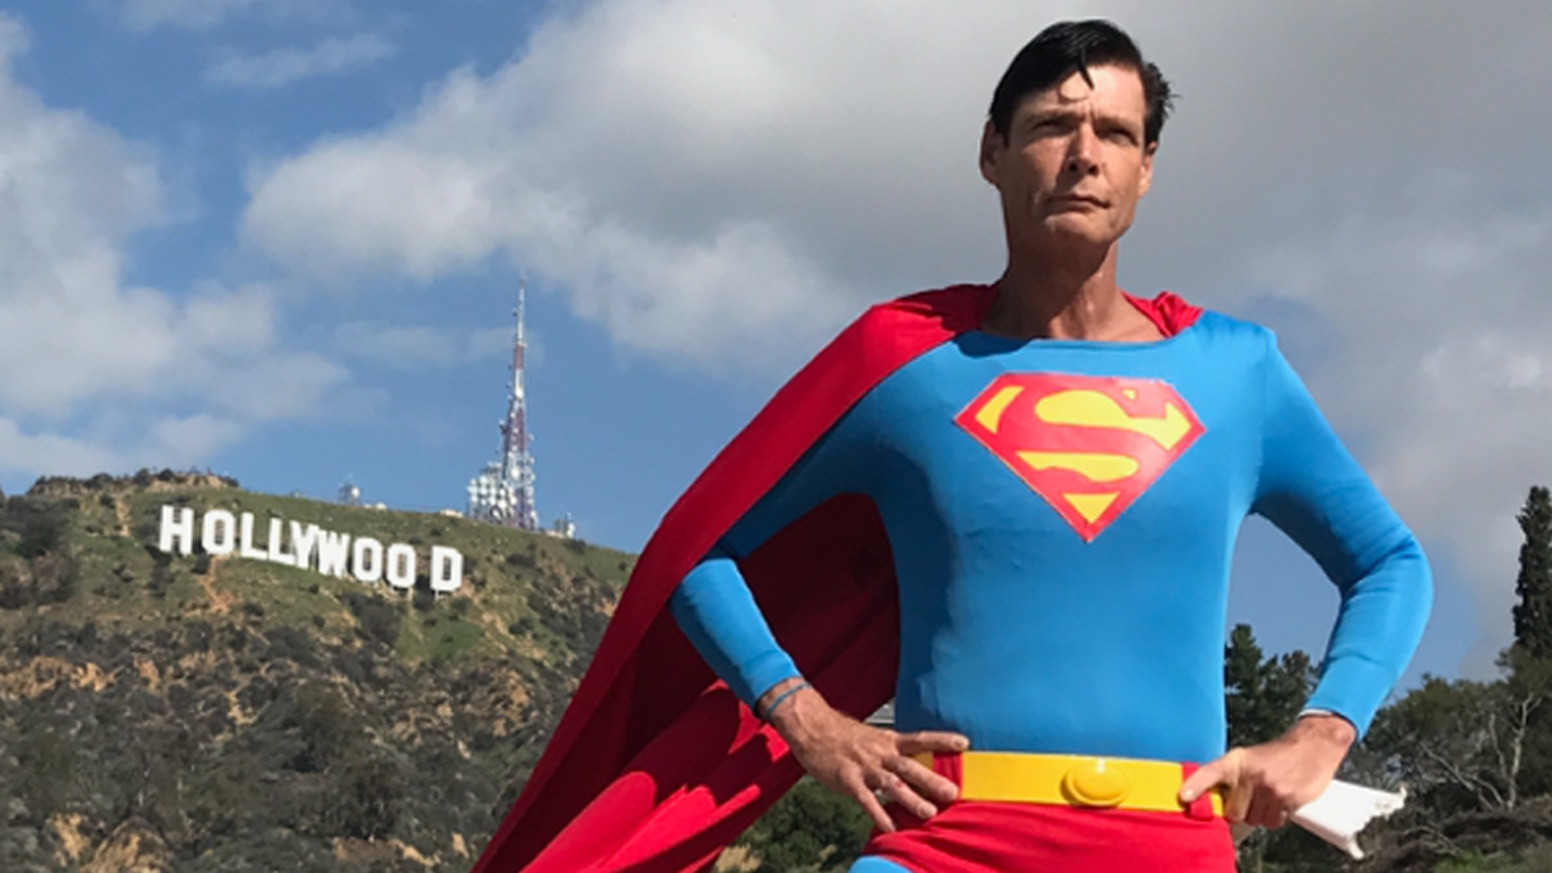 YOU can be part of the true story of Chris Dennis, who has inspired millions as Hollywood Superman.